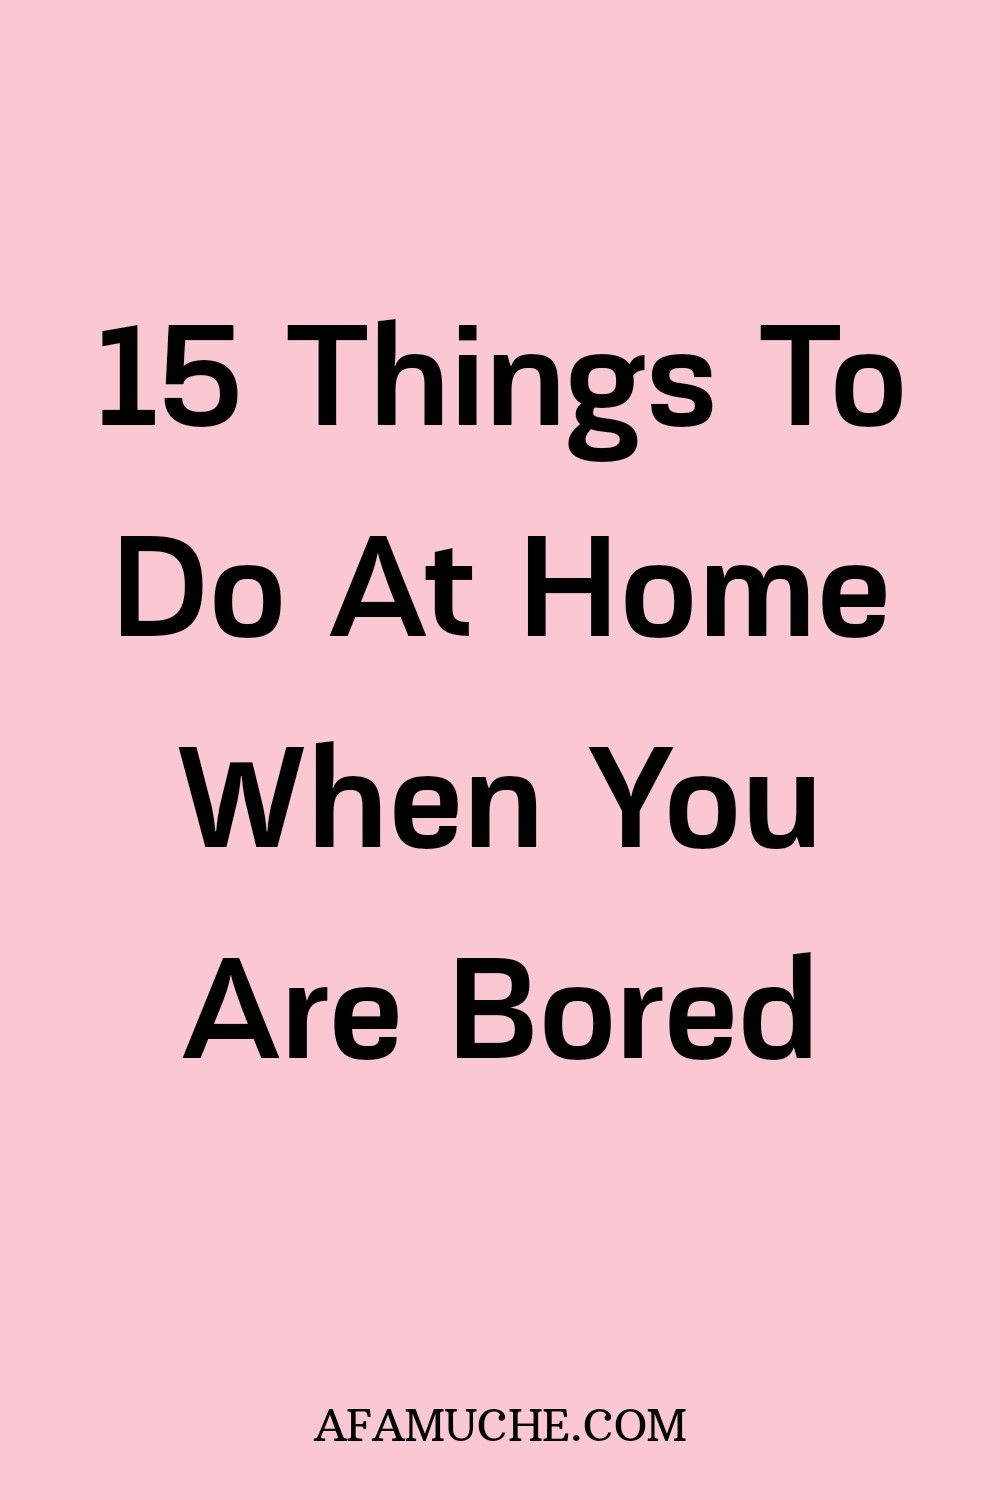 15 Things to do at home when you are bored